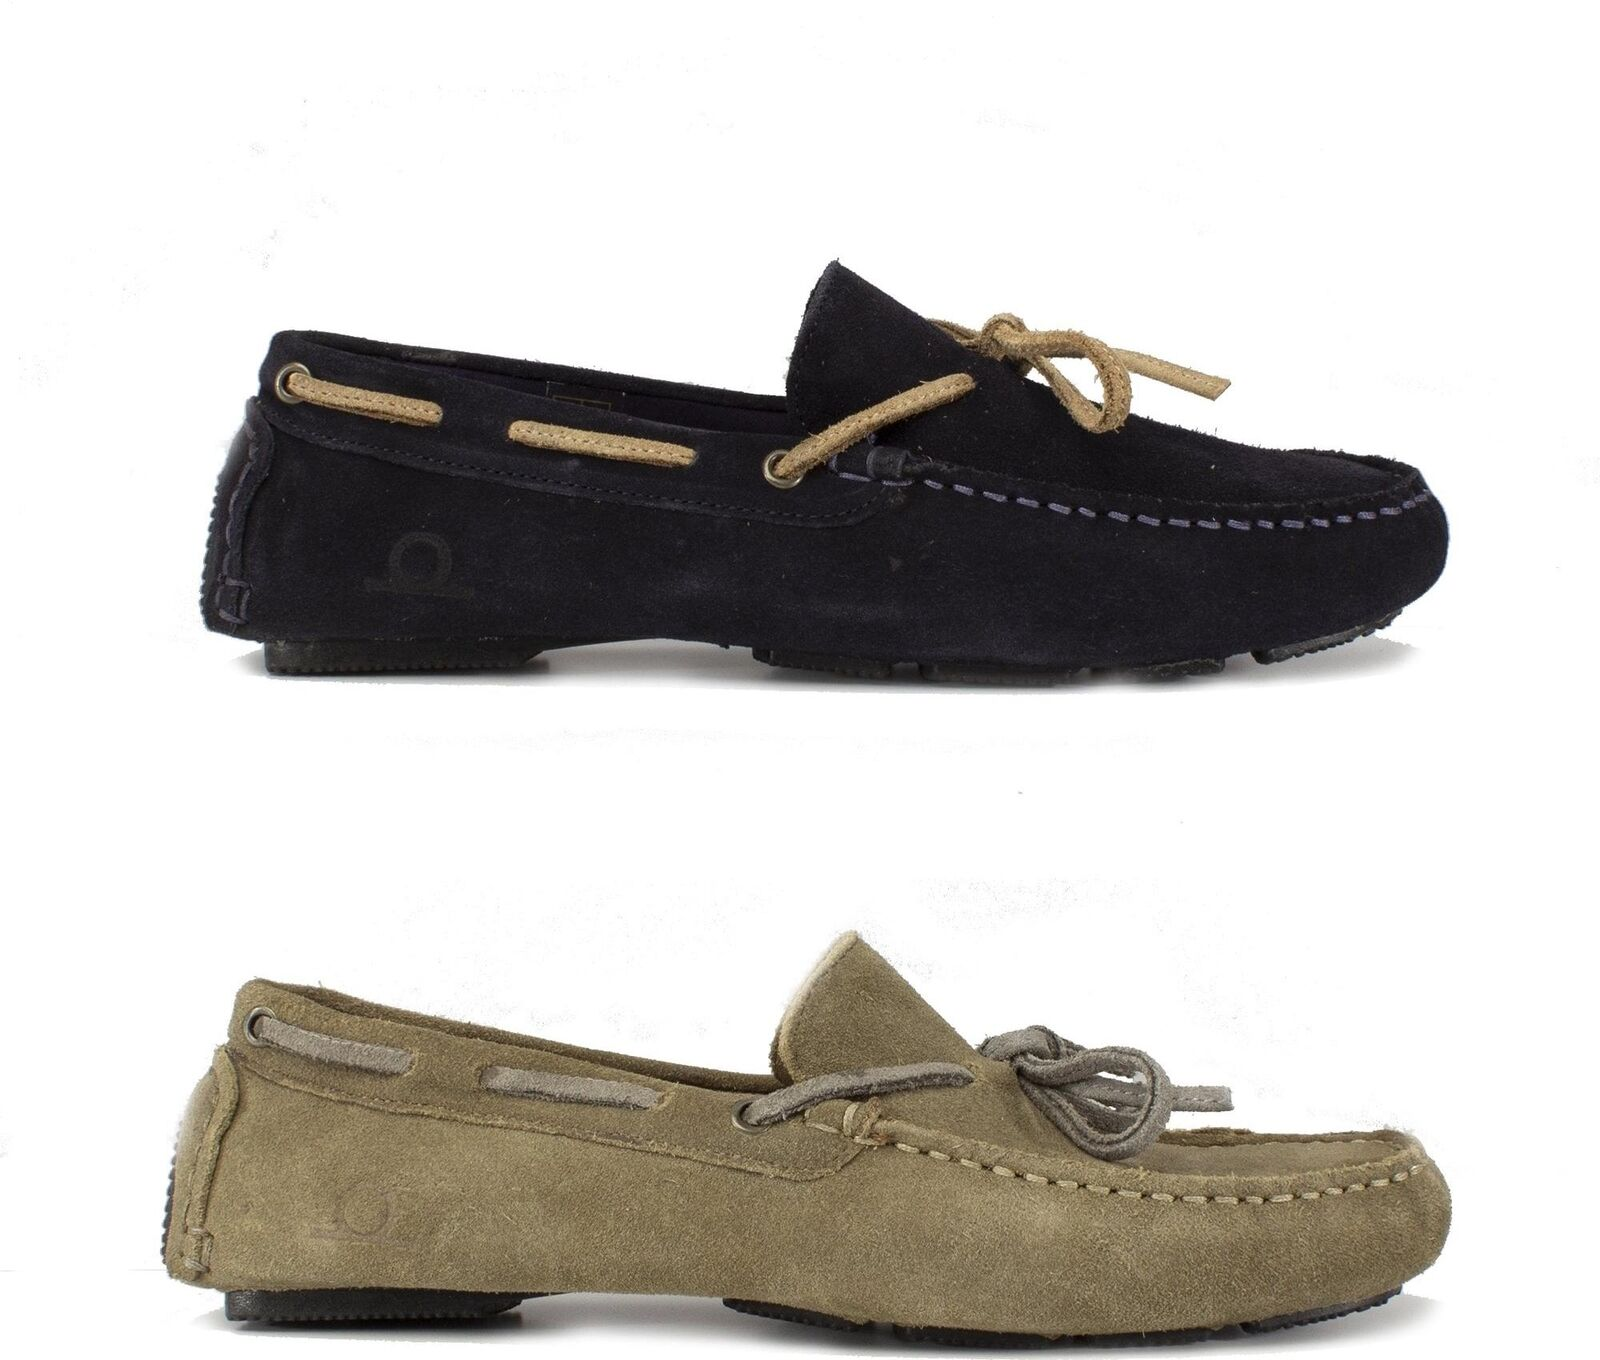 Chatham RILEY II Mens Casual Comfy Suede Leather Moccasin Driving Loafers shoes